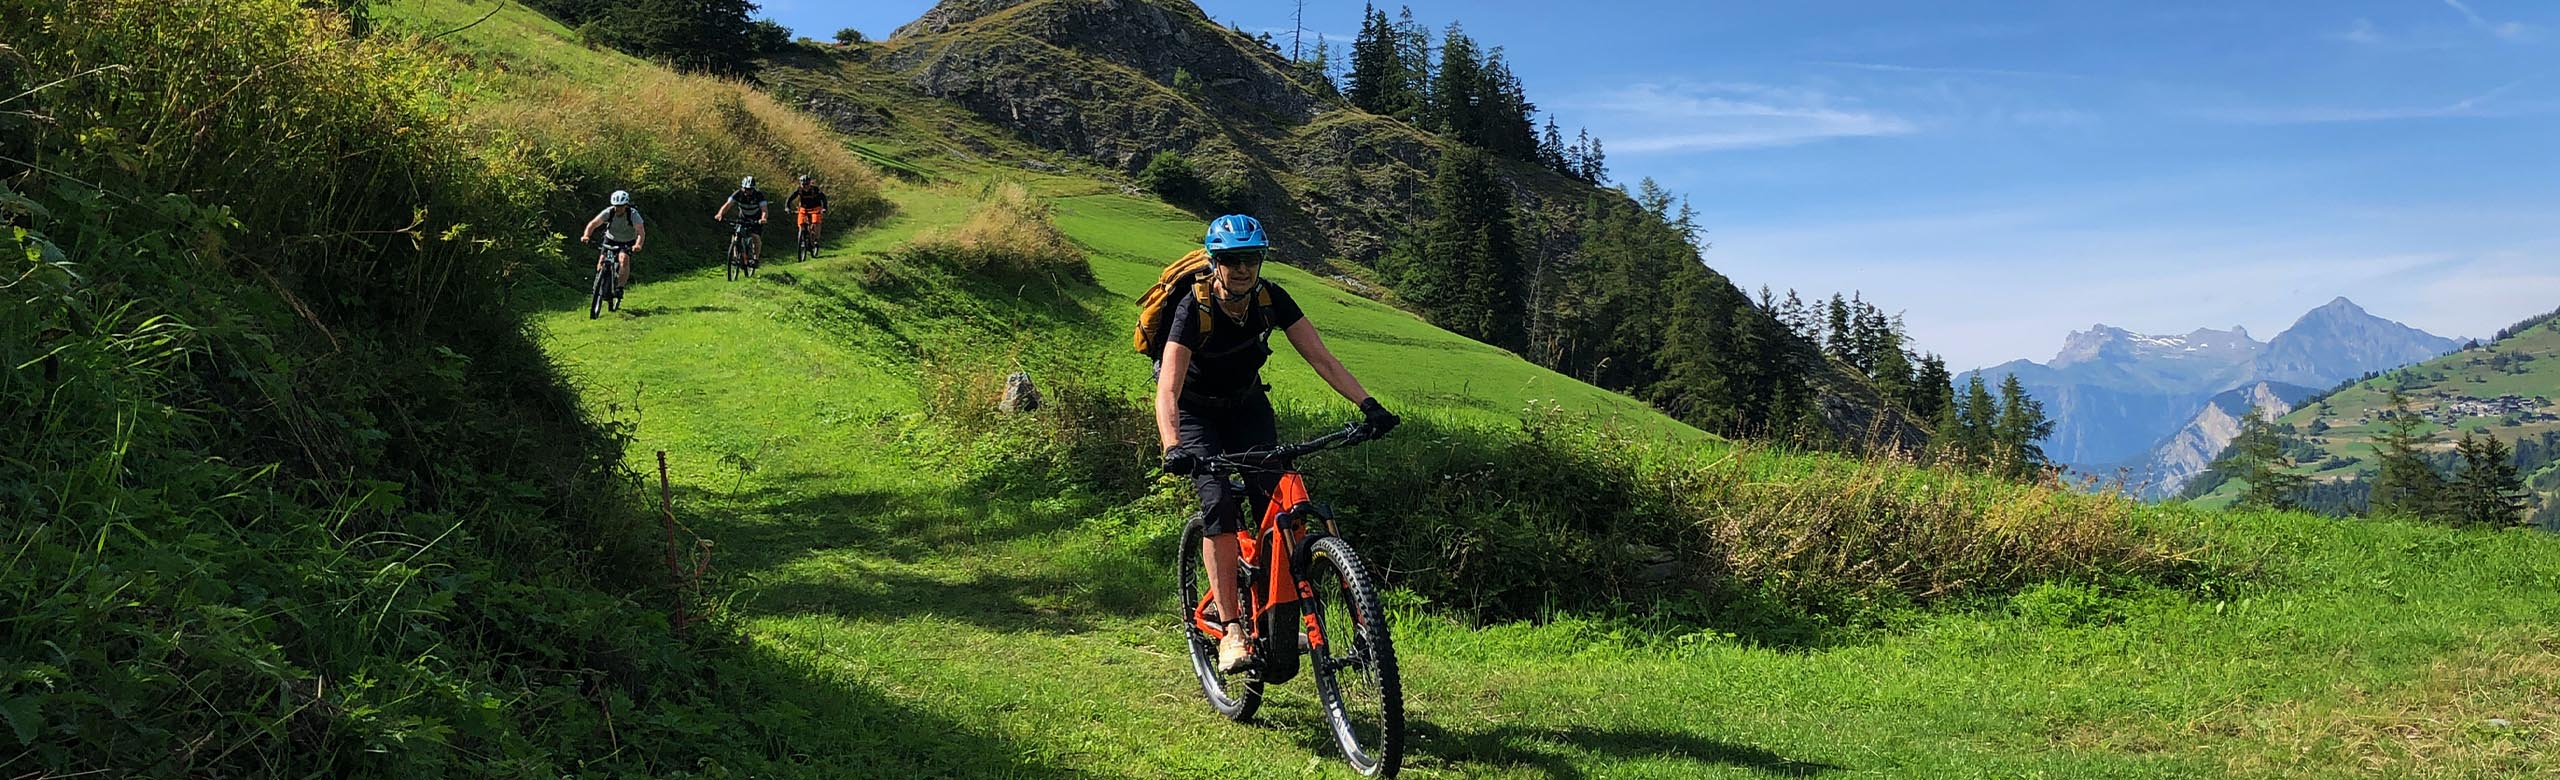 E-MTB tours in swiss Alps